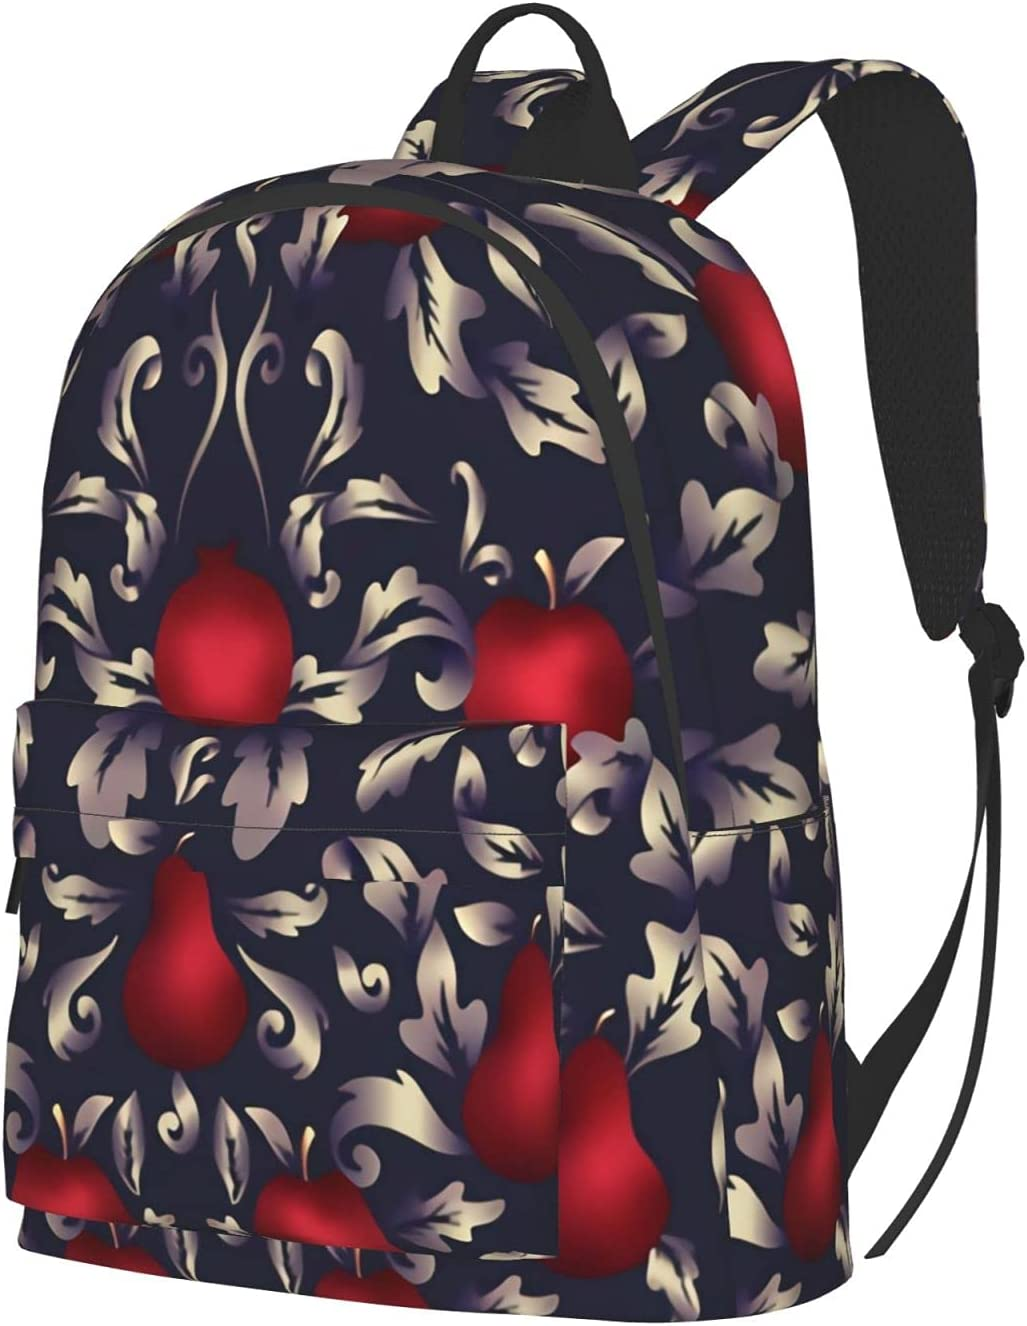 Rococo fruit purplish gold red Bac Challenge the lowest price of Max 60% OFF Japan Travel purple Backpack Laptop